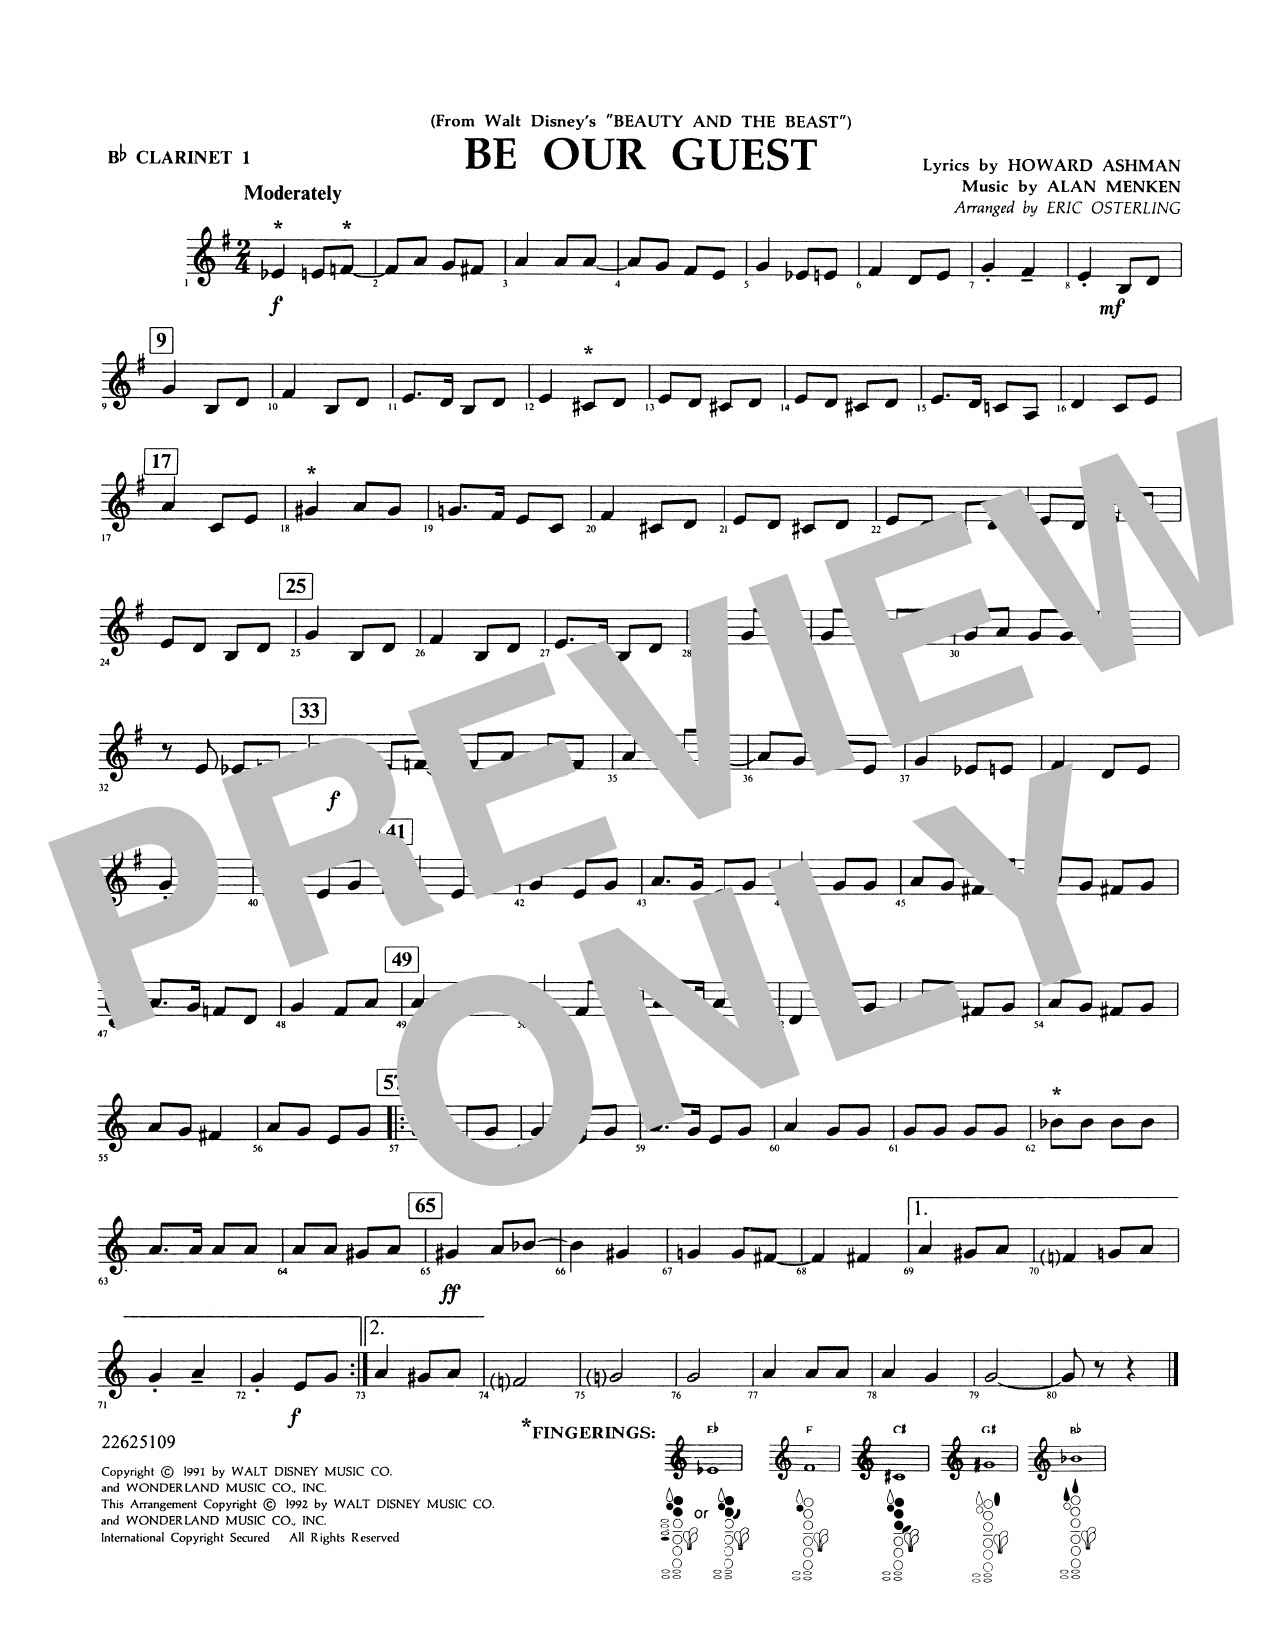 Be Our Guest (from Beauty And The Beast) (arr. Eric Osterling) - Bb Clarinet 1 Sheet Music